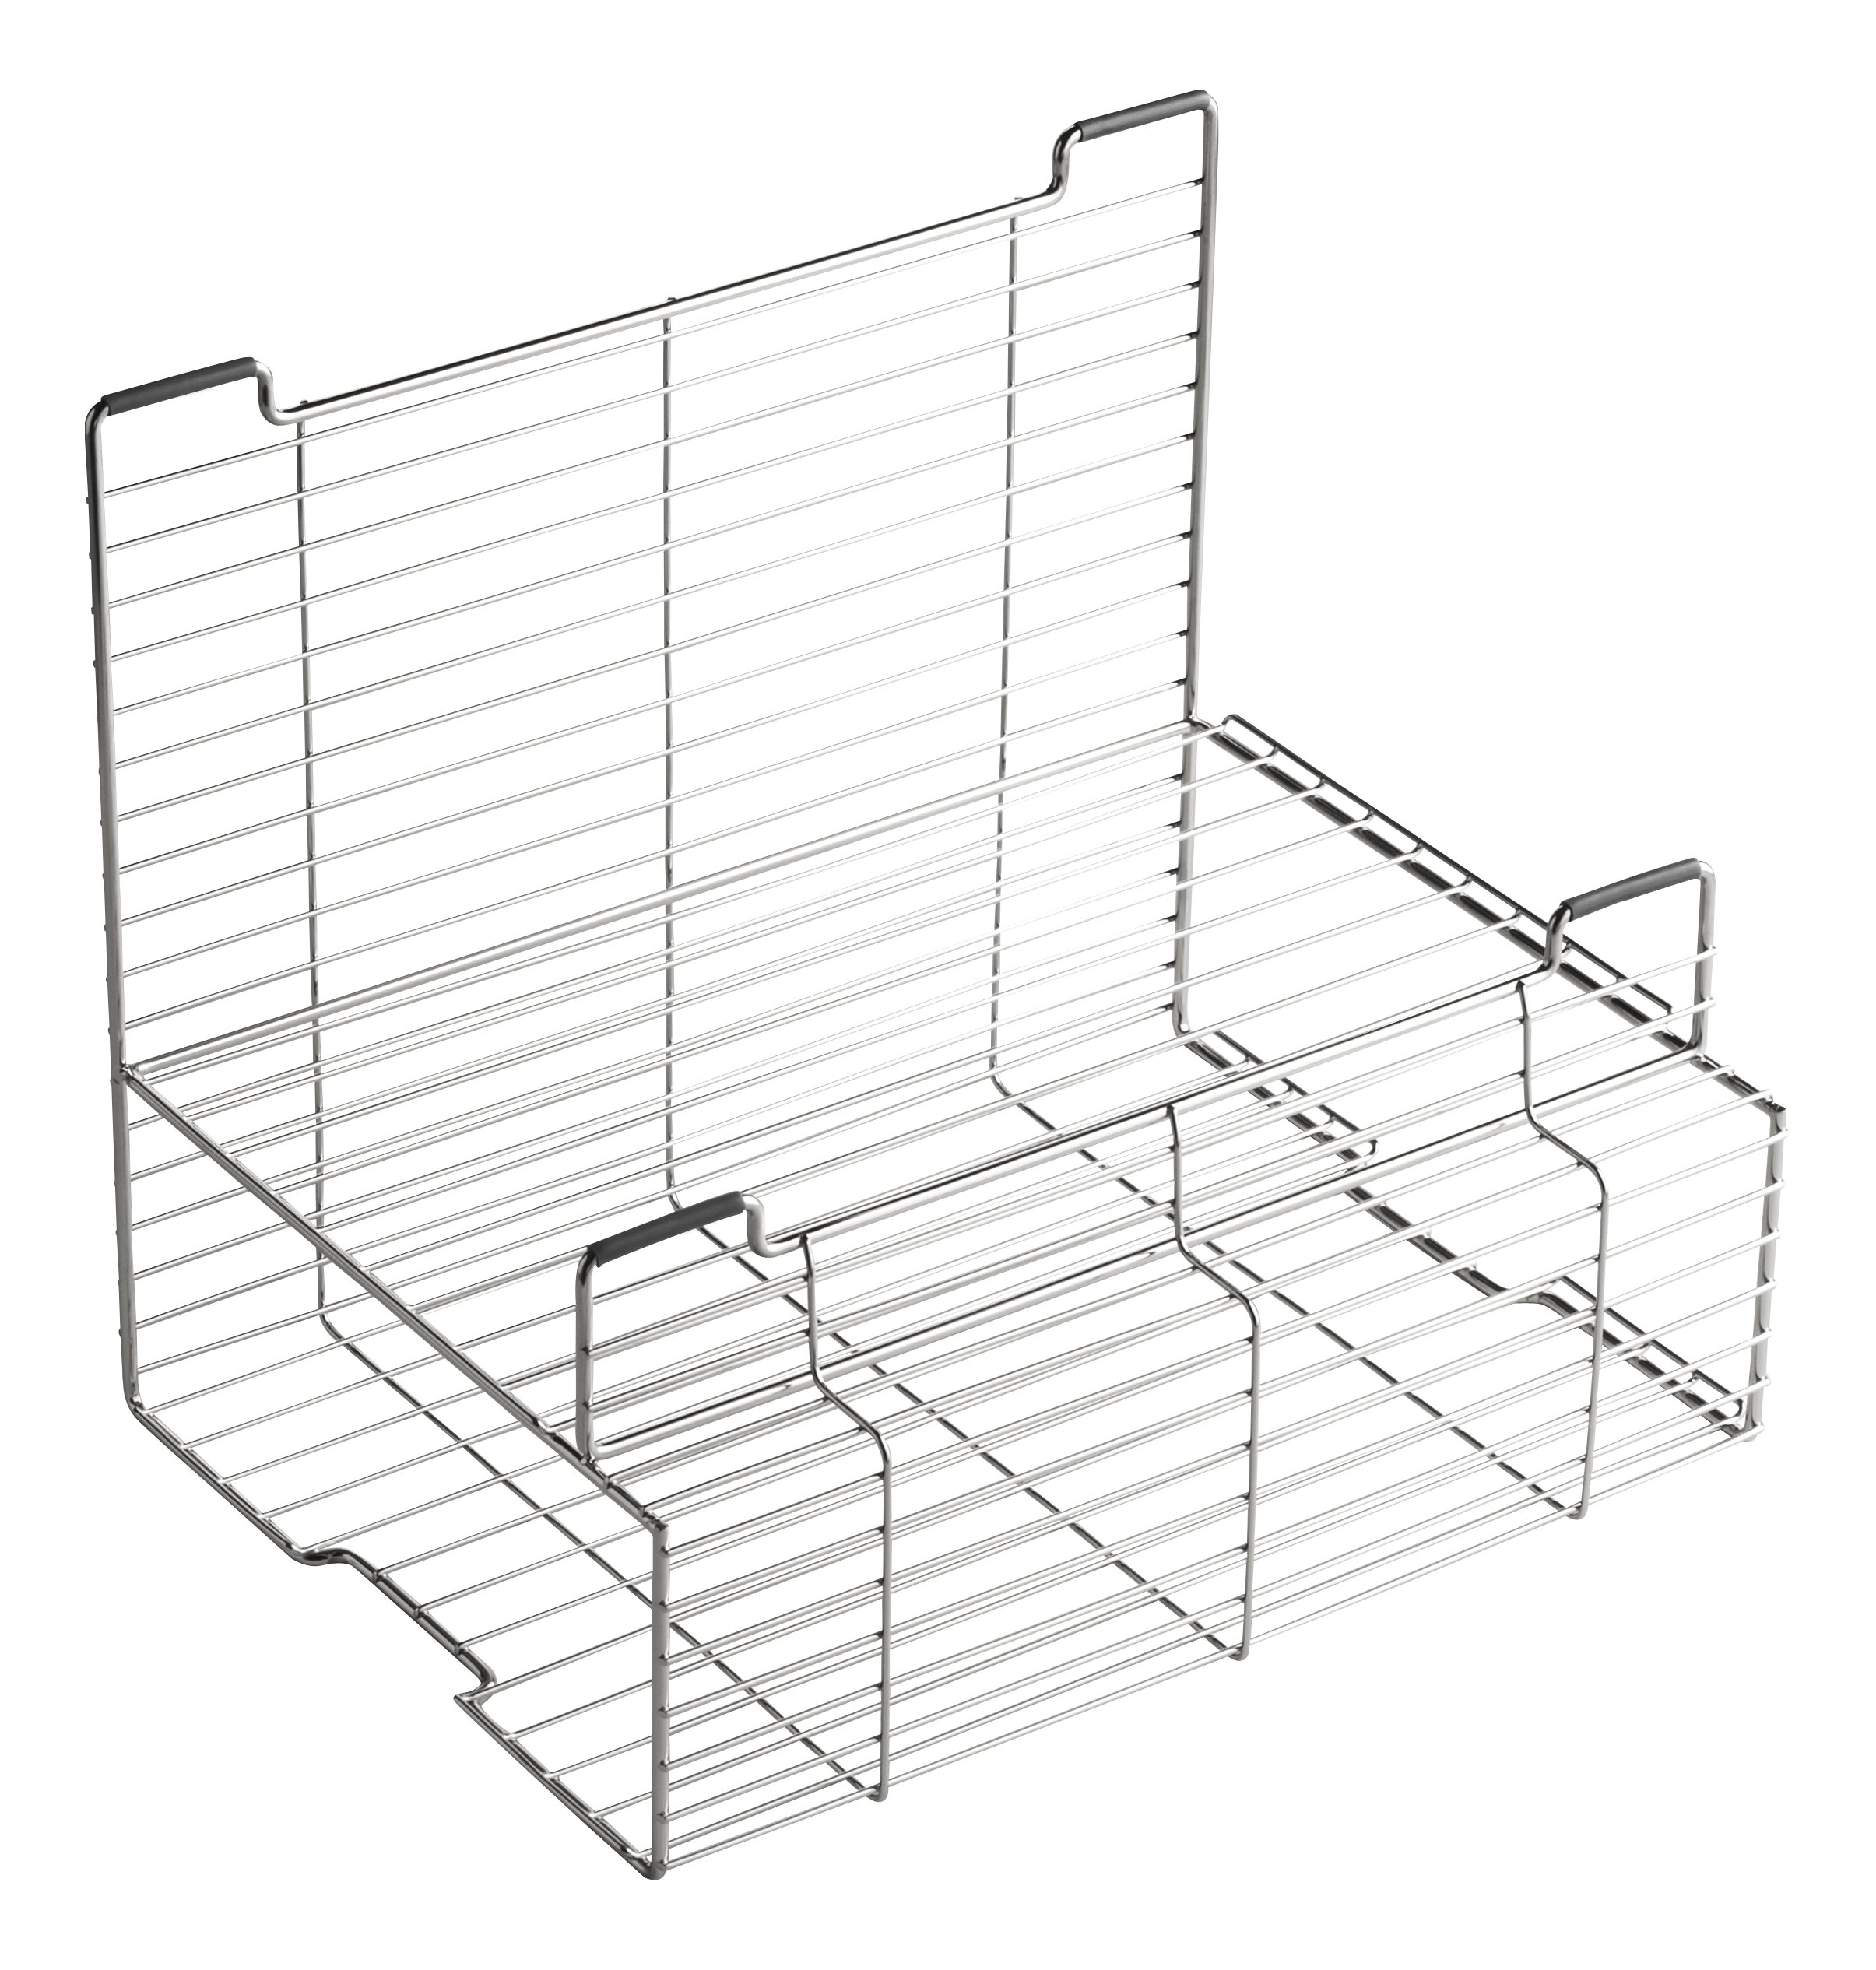 Kohler K-6236-ST Accessory Storage Rack for Stages 33'' and 45'' Sinks, Stainless Steel